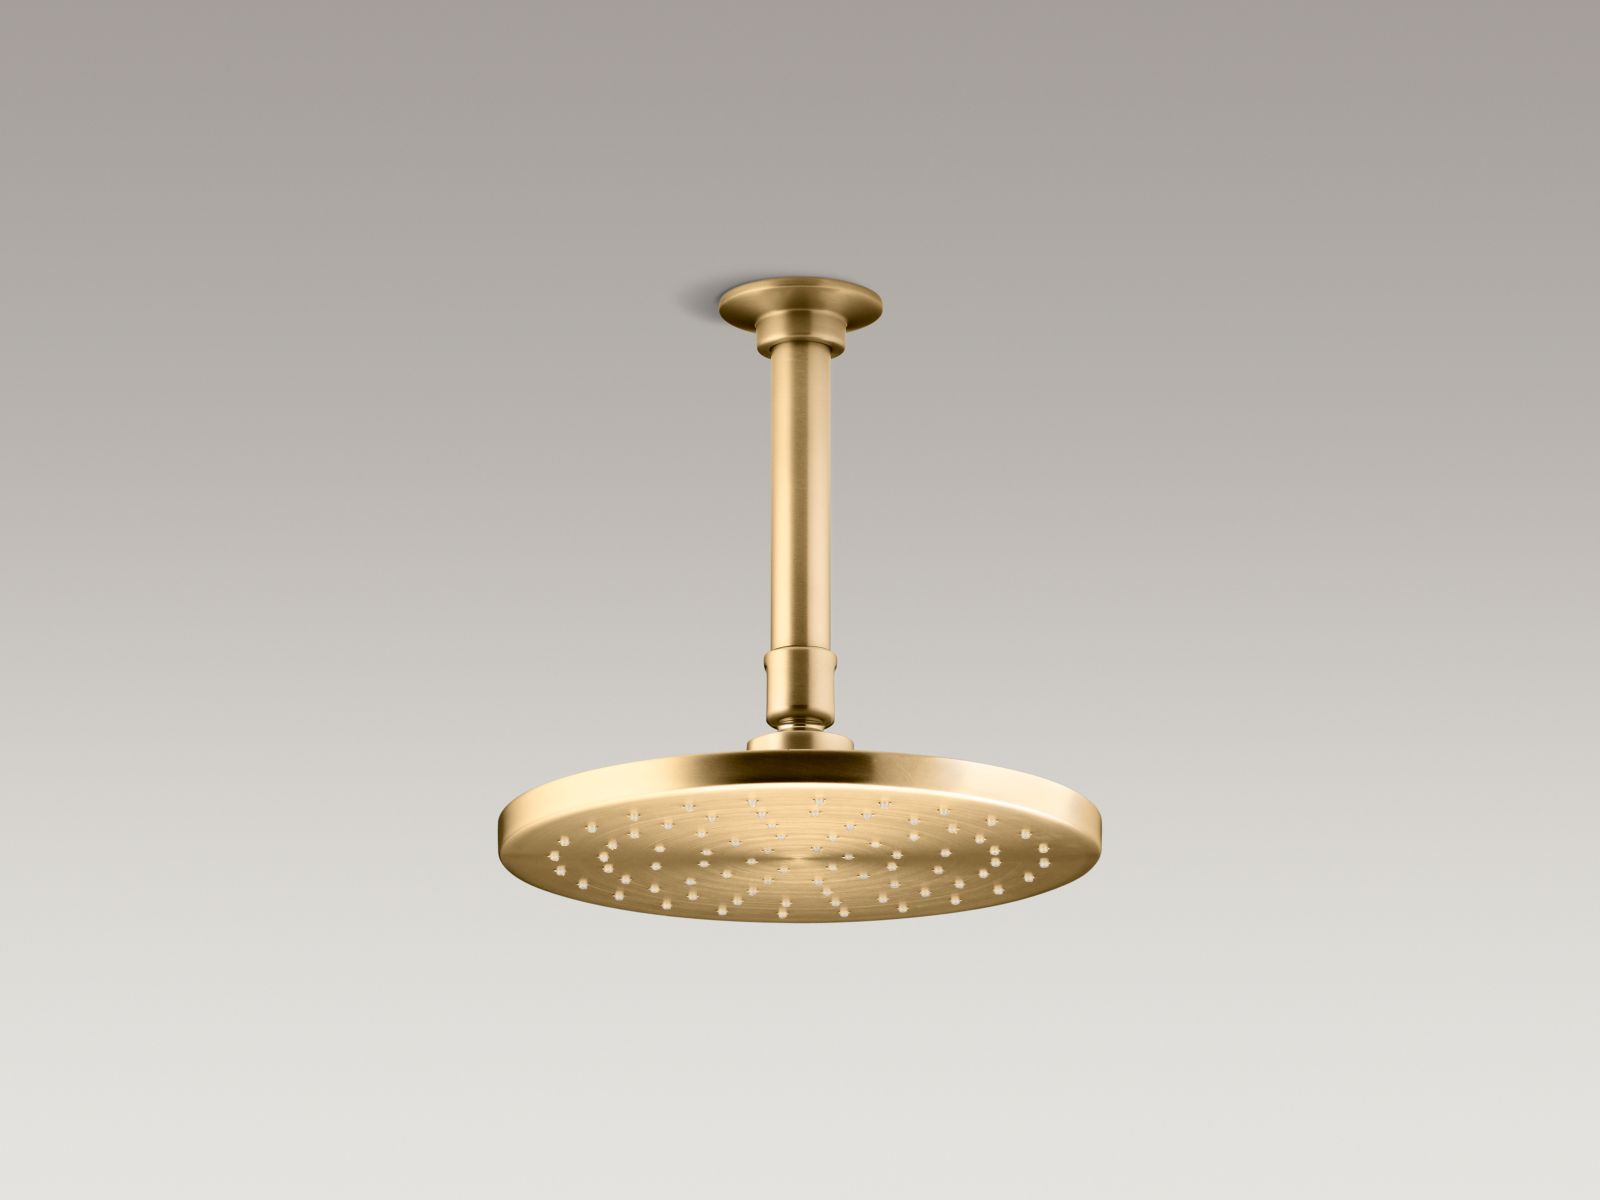 Naples Round Stainless Steel Wall Mount Rainfall Shower Head In Brushed Gold Finish